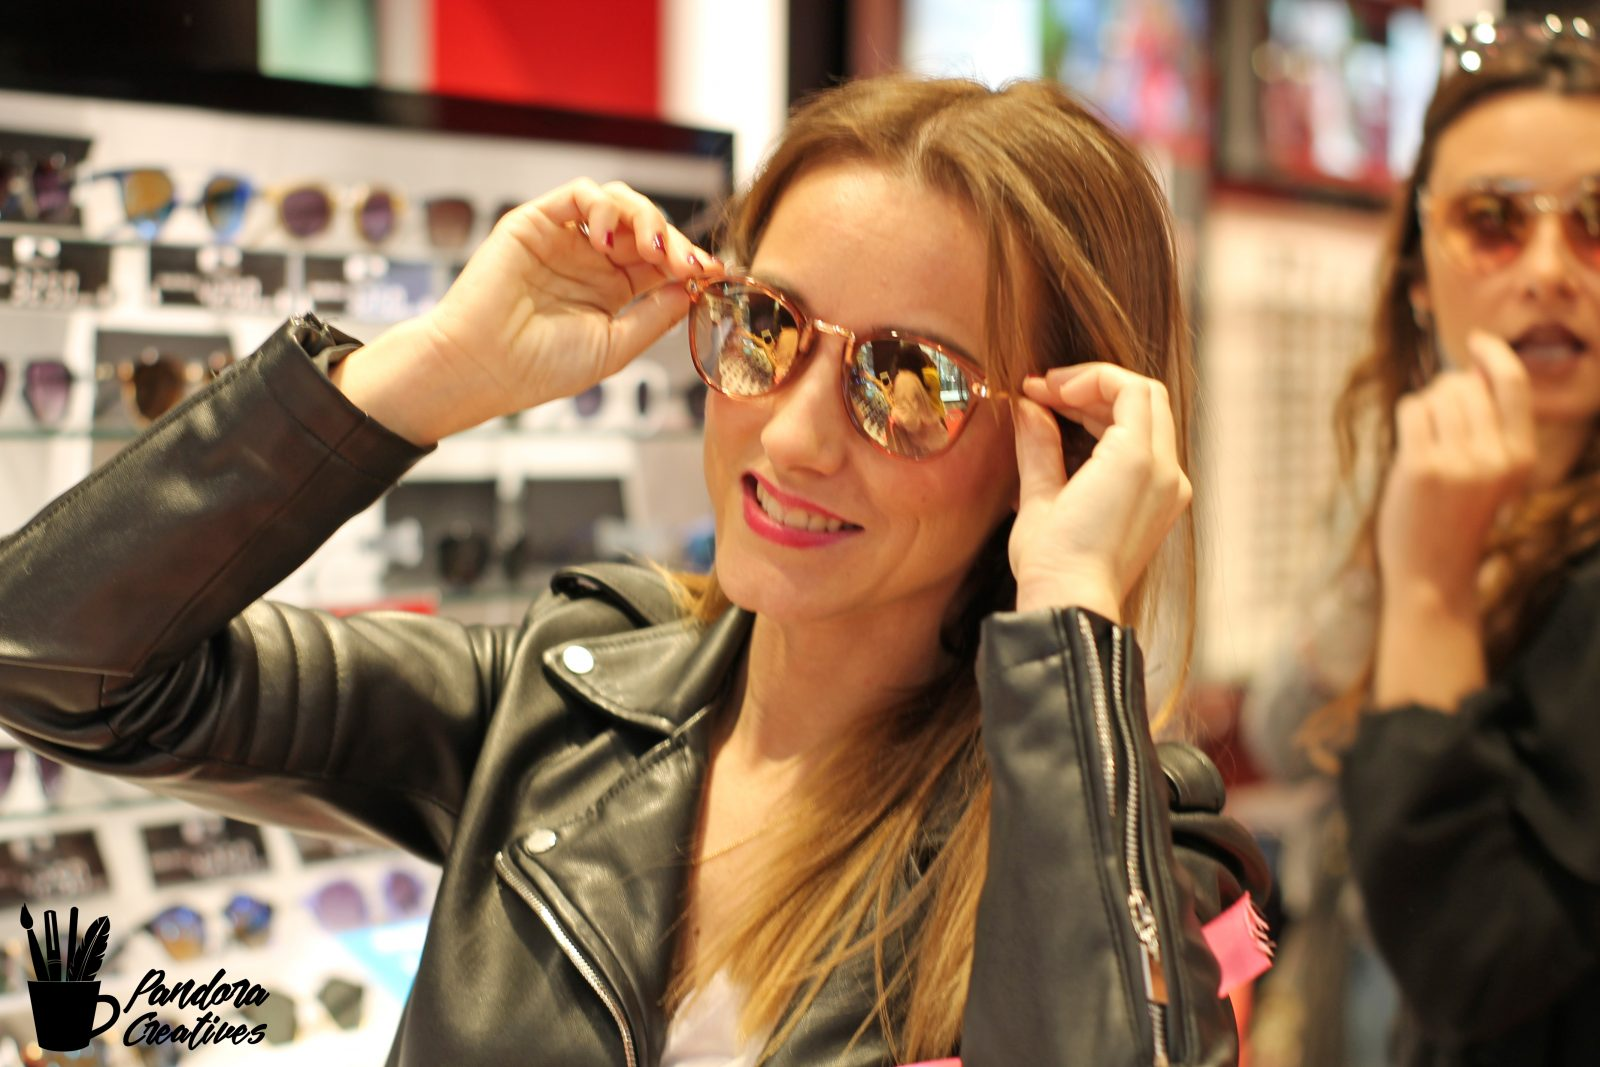 Roberto Sunglasses (9)